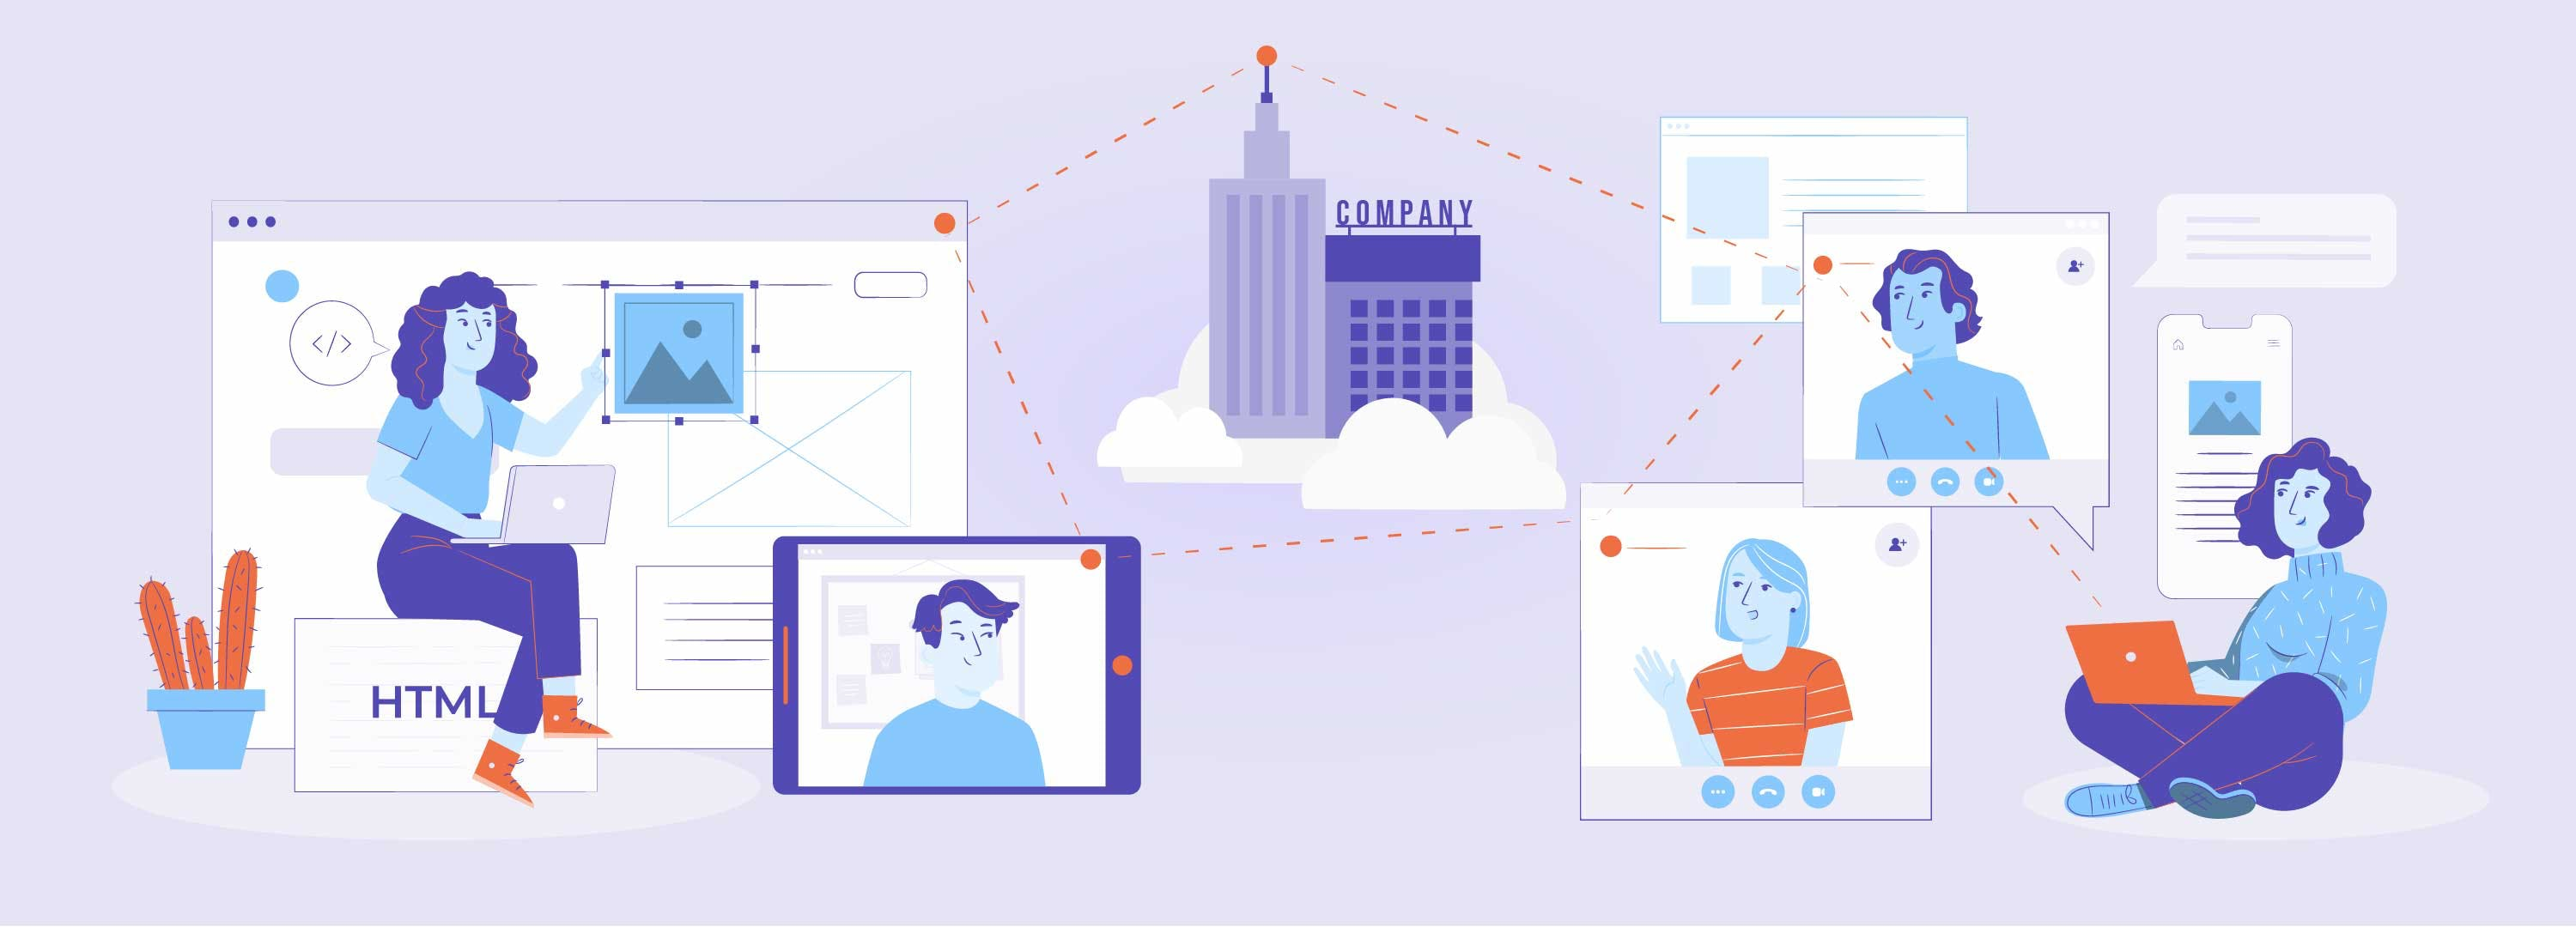 15 Fully Remote Companies to Work For in 2021